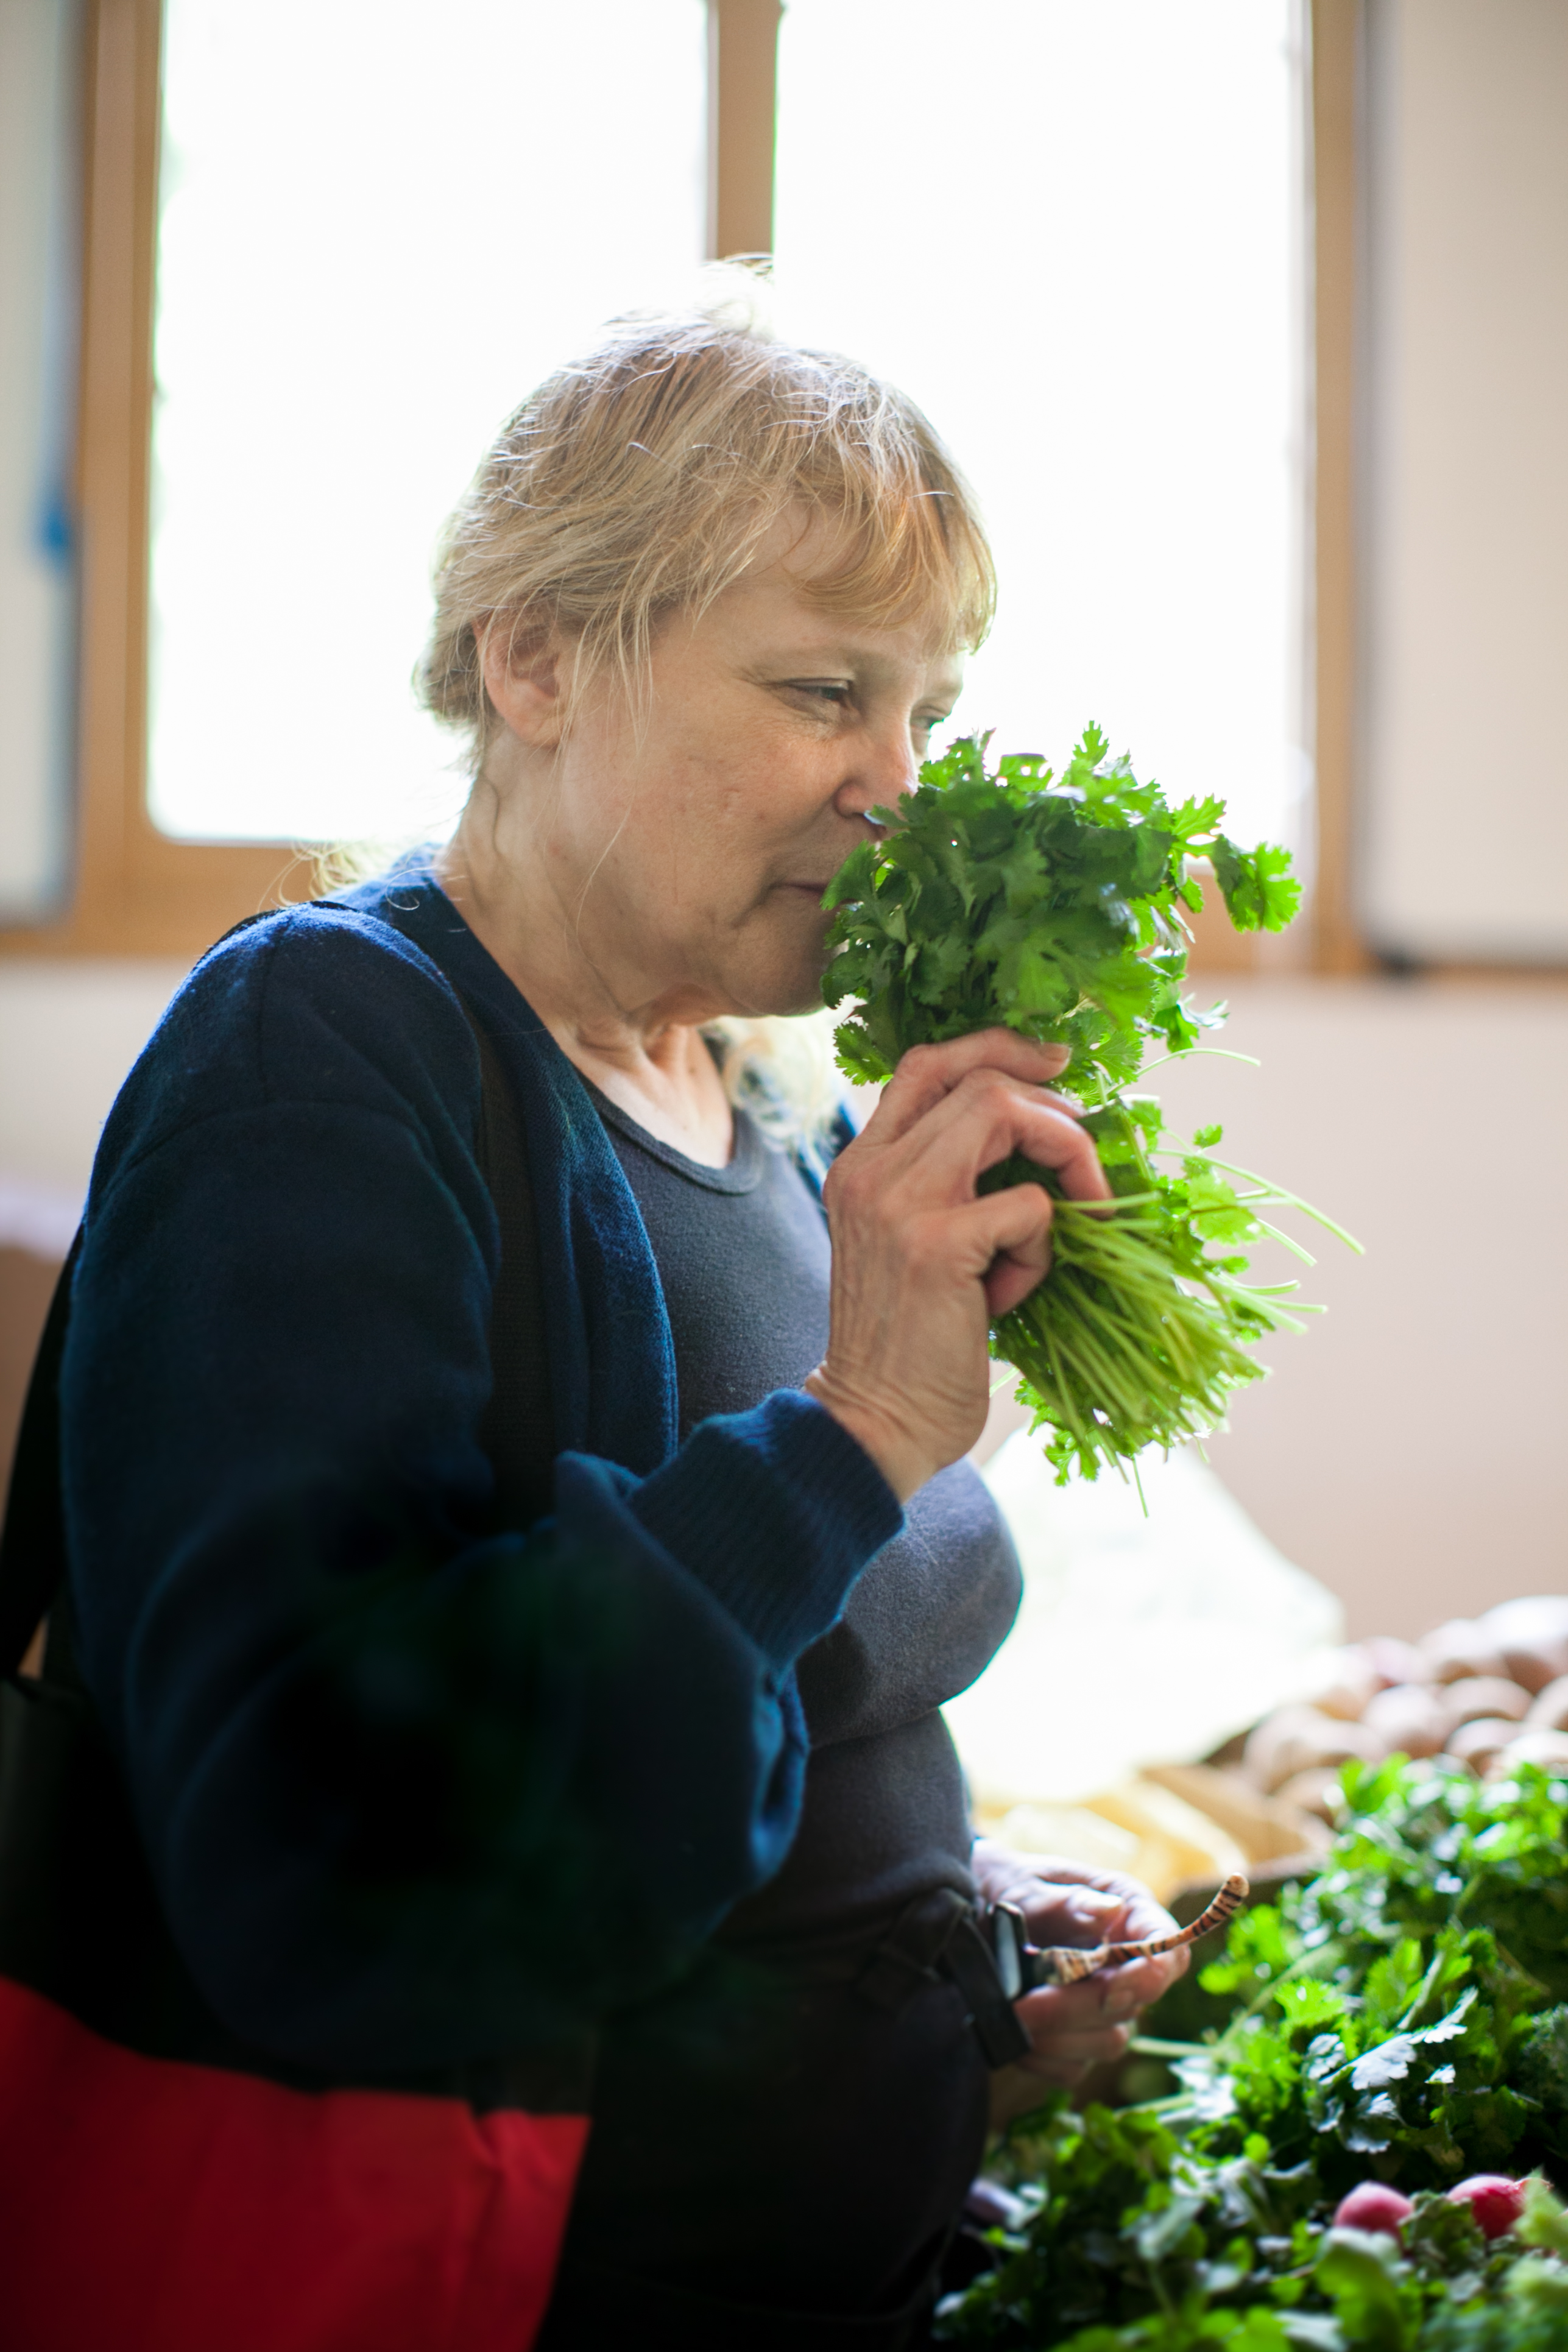 woman smelling cilantro